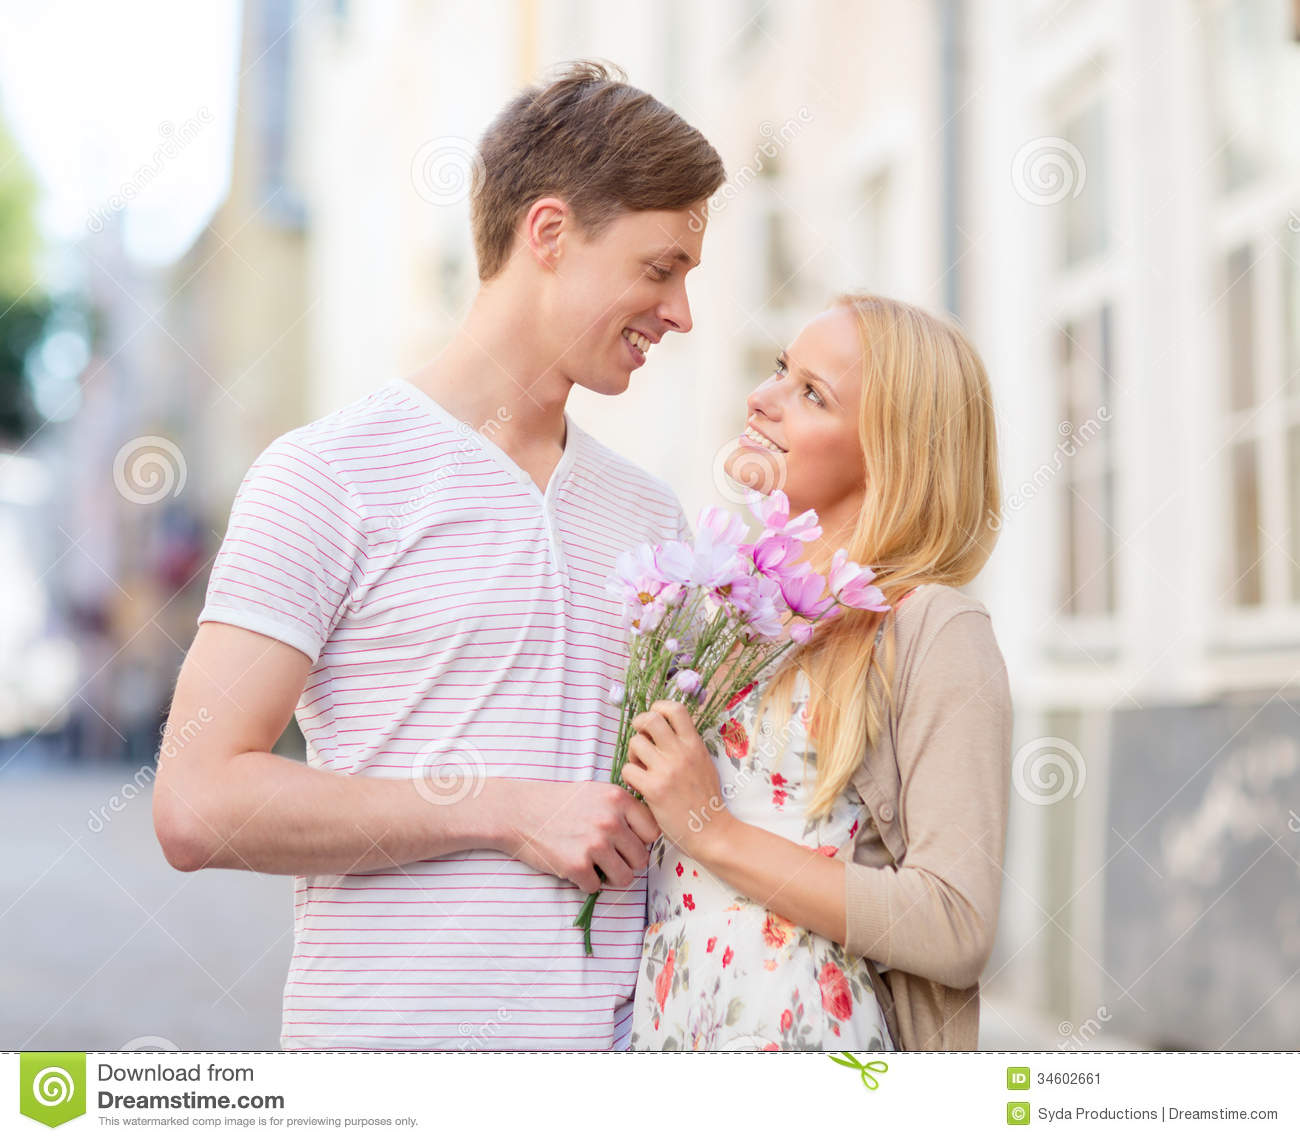 Couple Enjoying Their Summer Holidays Stock Photo: Couple With Flowers In The City Stock Image